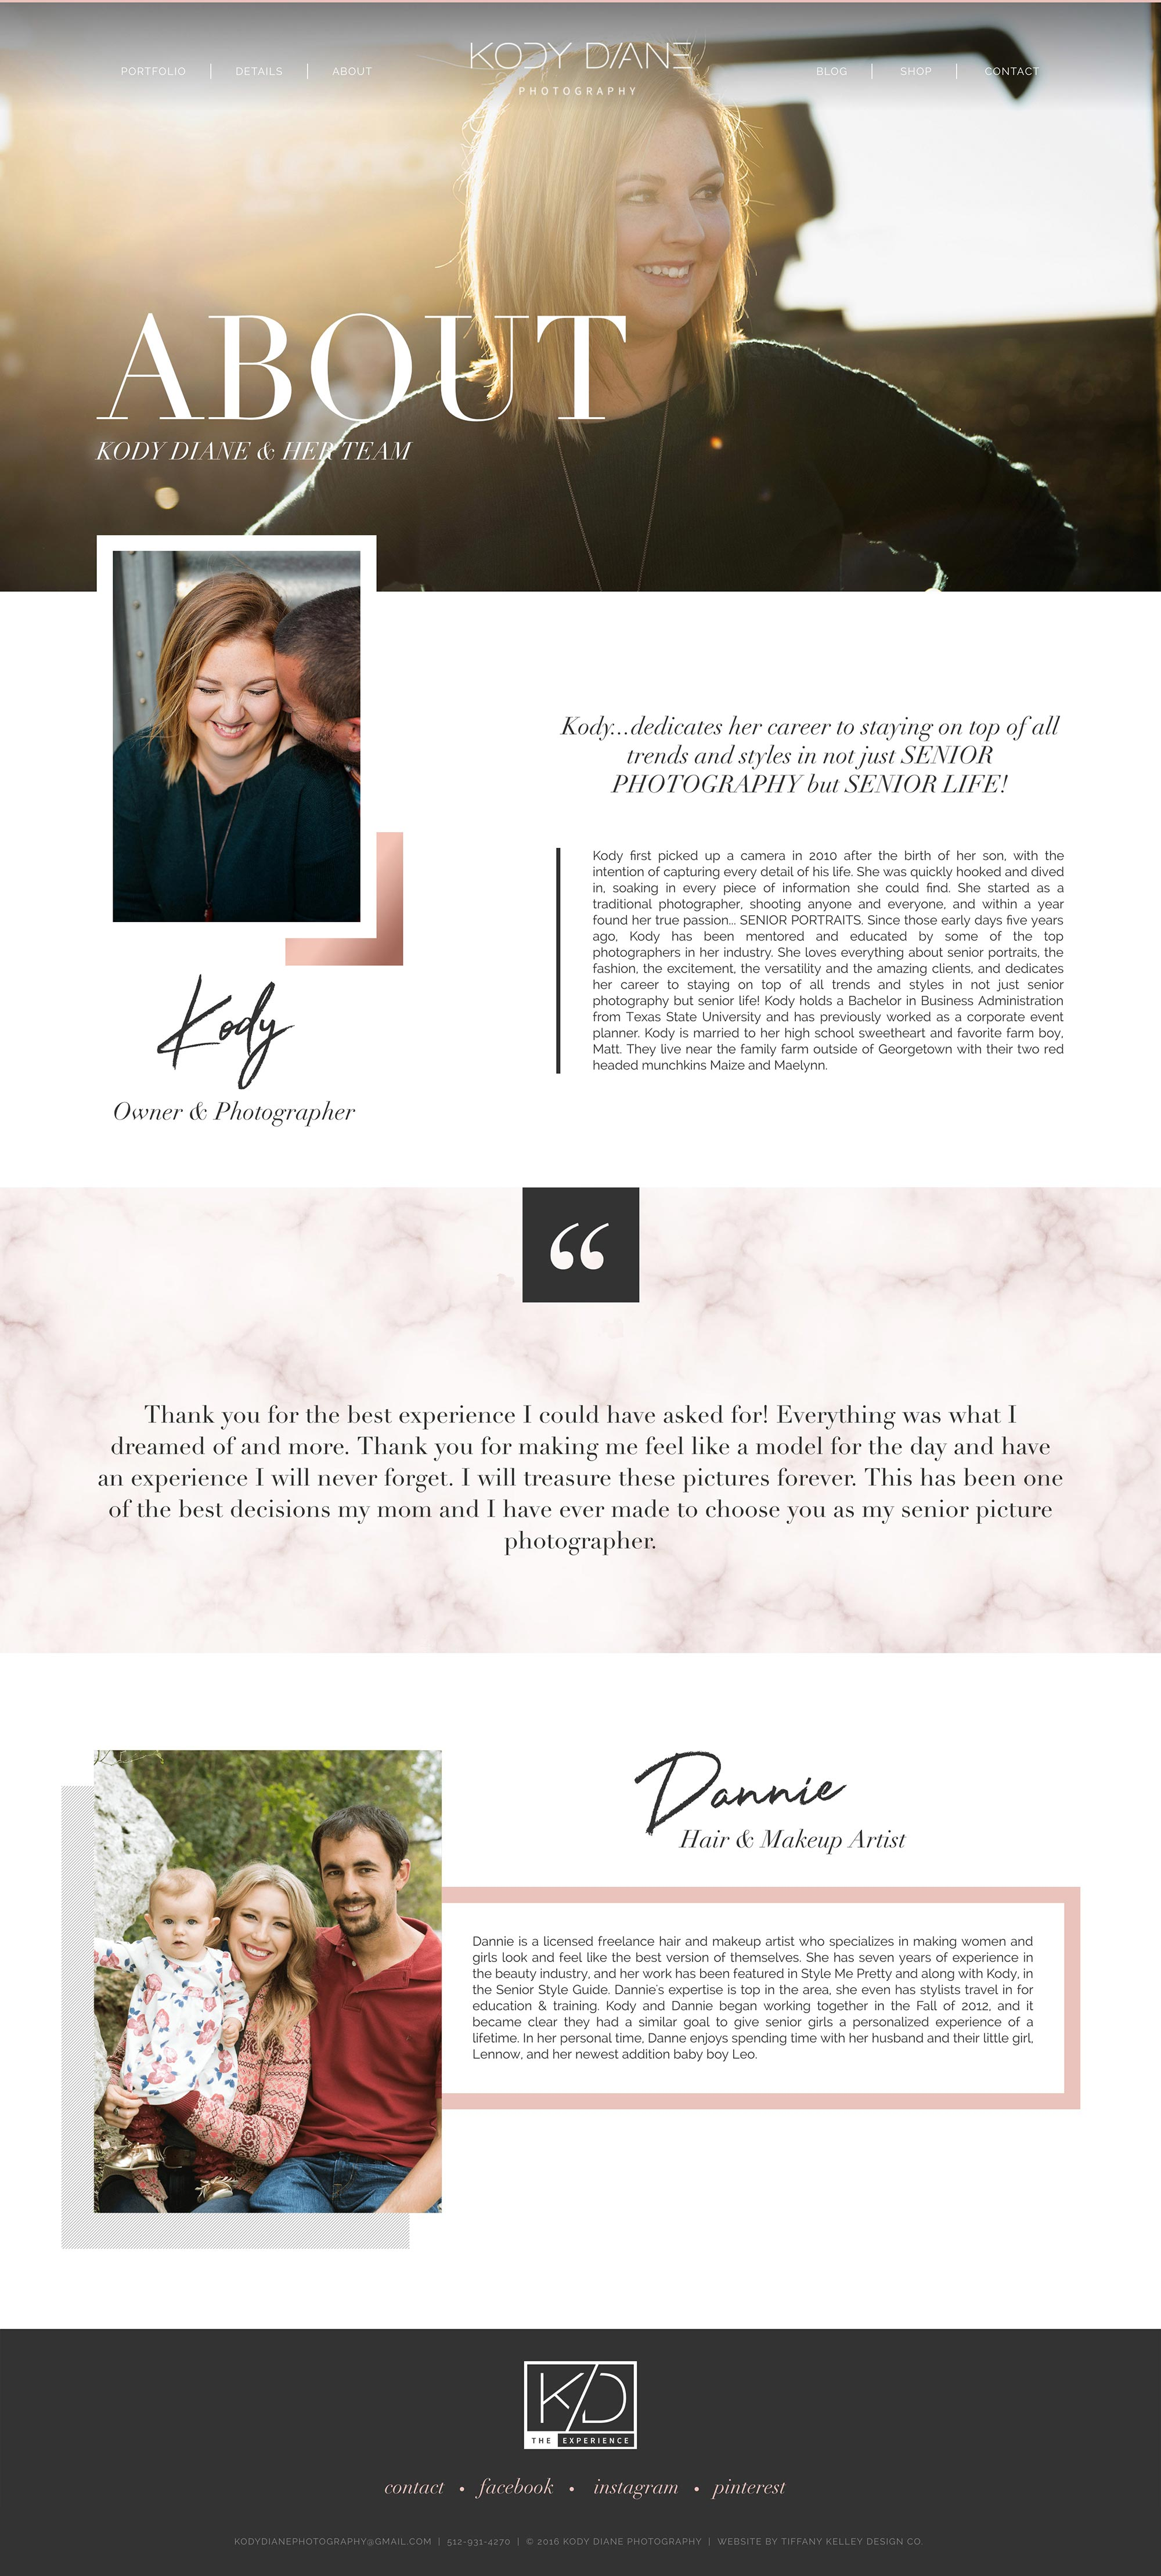 about web design kody diane photography